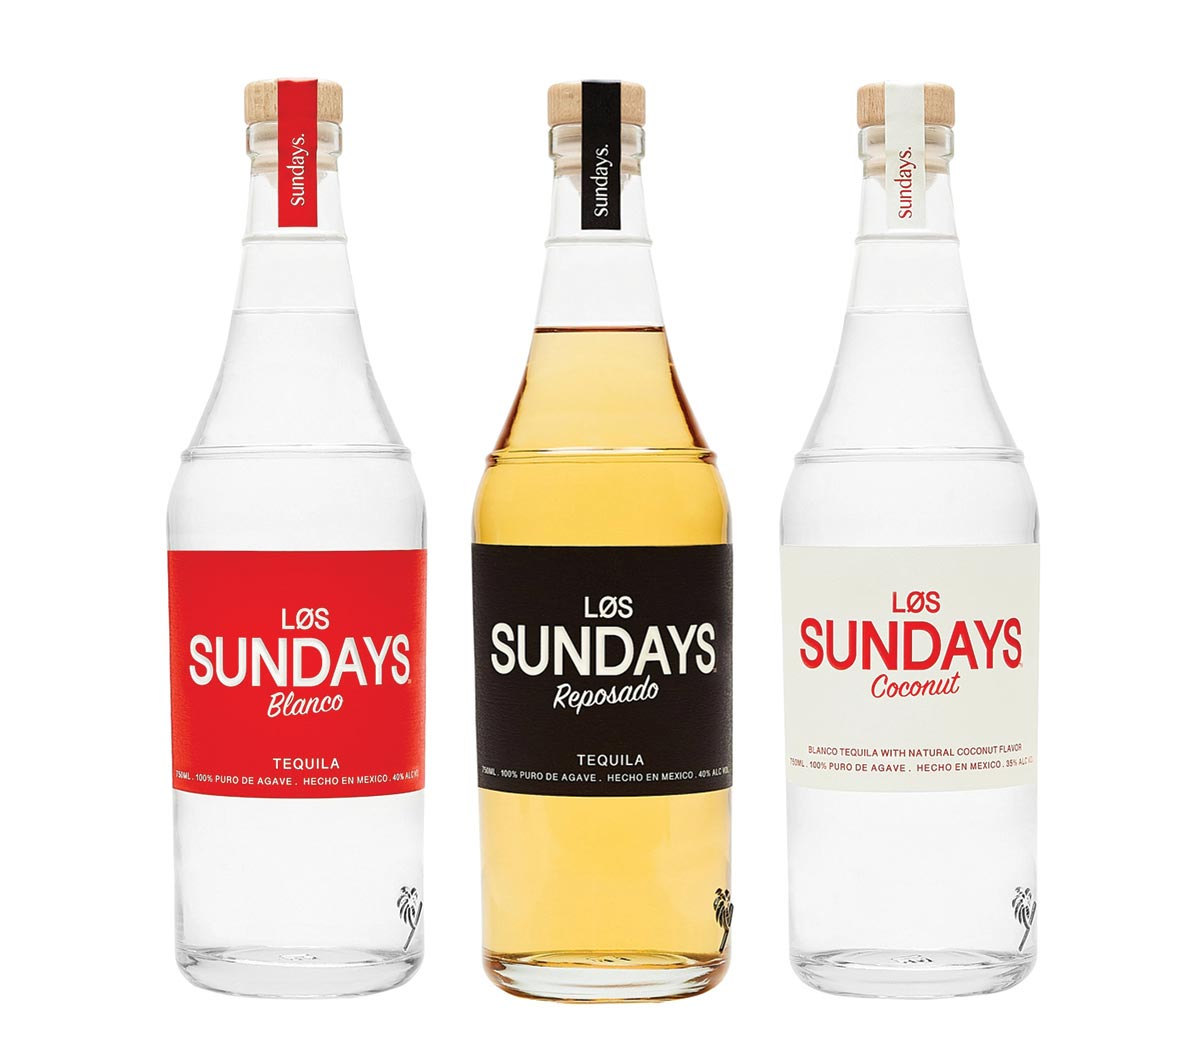 Løs Sundays Tequilas Offers Sustainable Sipping